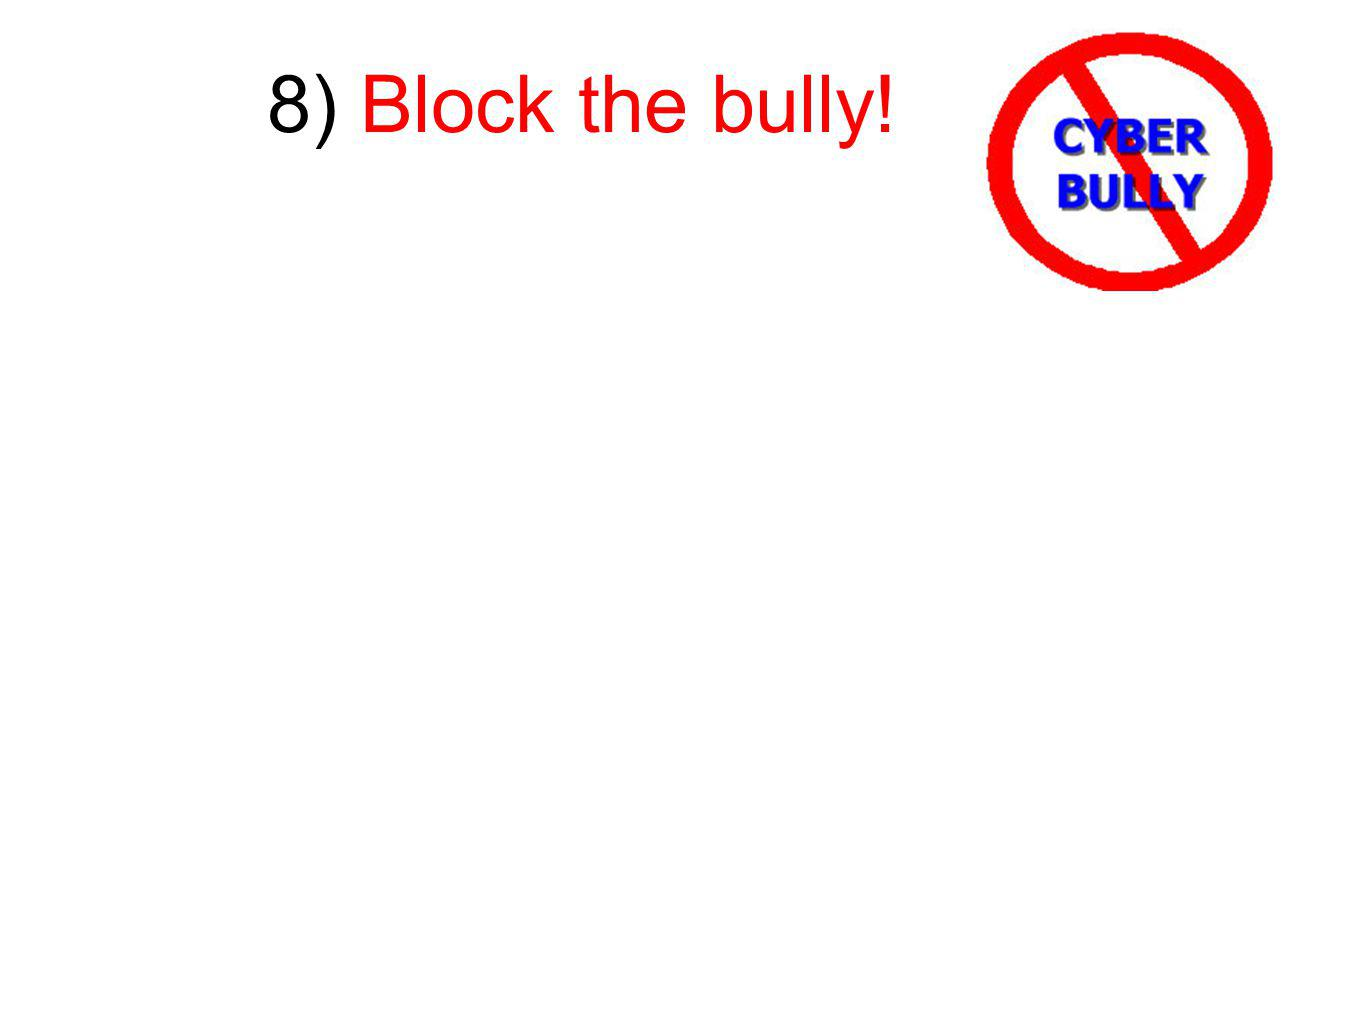 8) Block the bully!